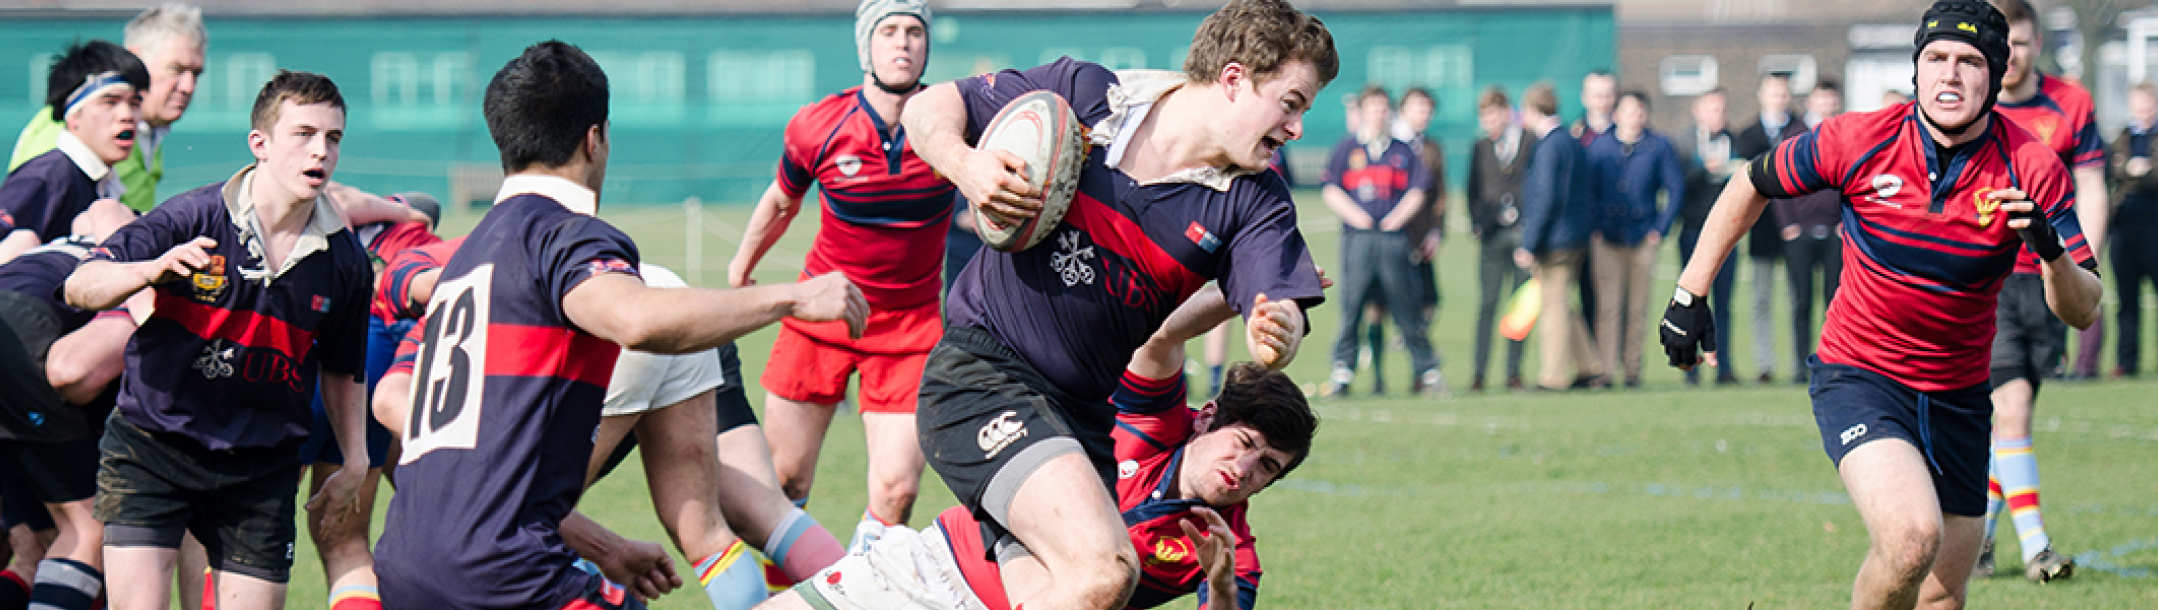 Join a club at London s top university for sport. 734cc69c95